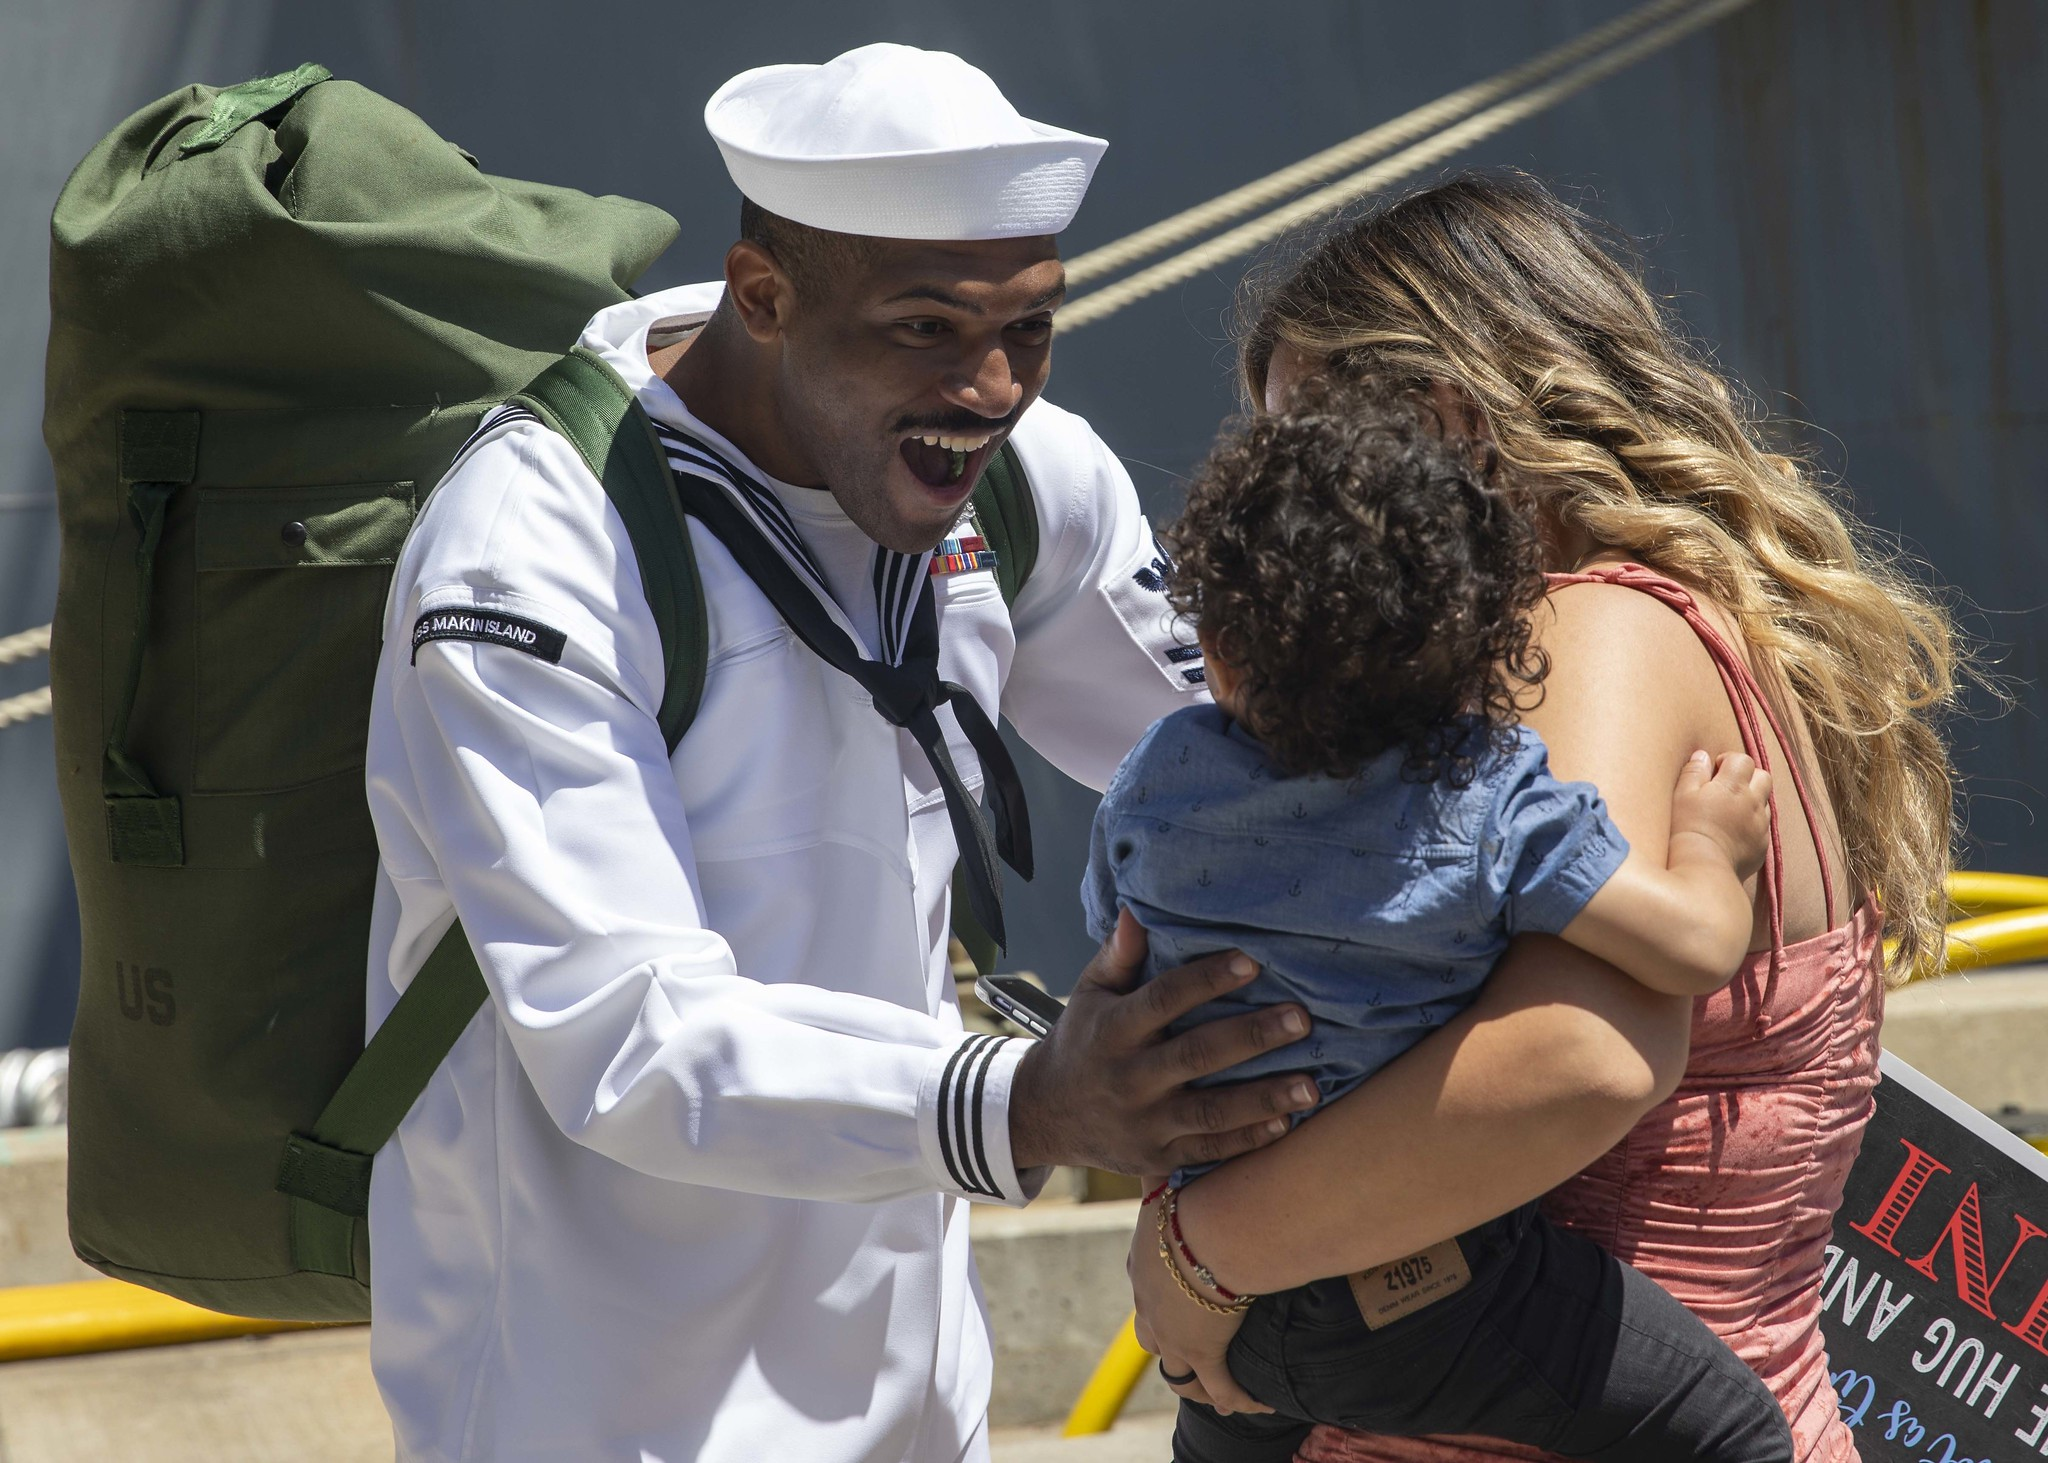 Cryptologic Technician (Collection) 1st Class Kameron Bradley greets his family on May 23, 2021, after returning to homeport from a seventh-month deployment aboard the amphibious transport dock ship USS Somerset (LPD 25) in San Diego, Calif. (MC2 Michael J. Lieberknecht/Navy)